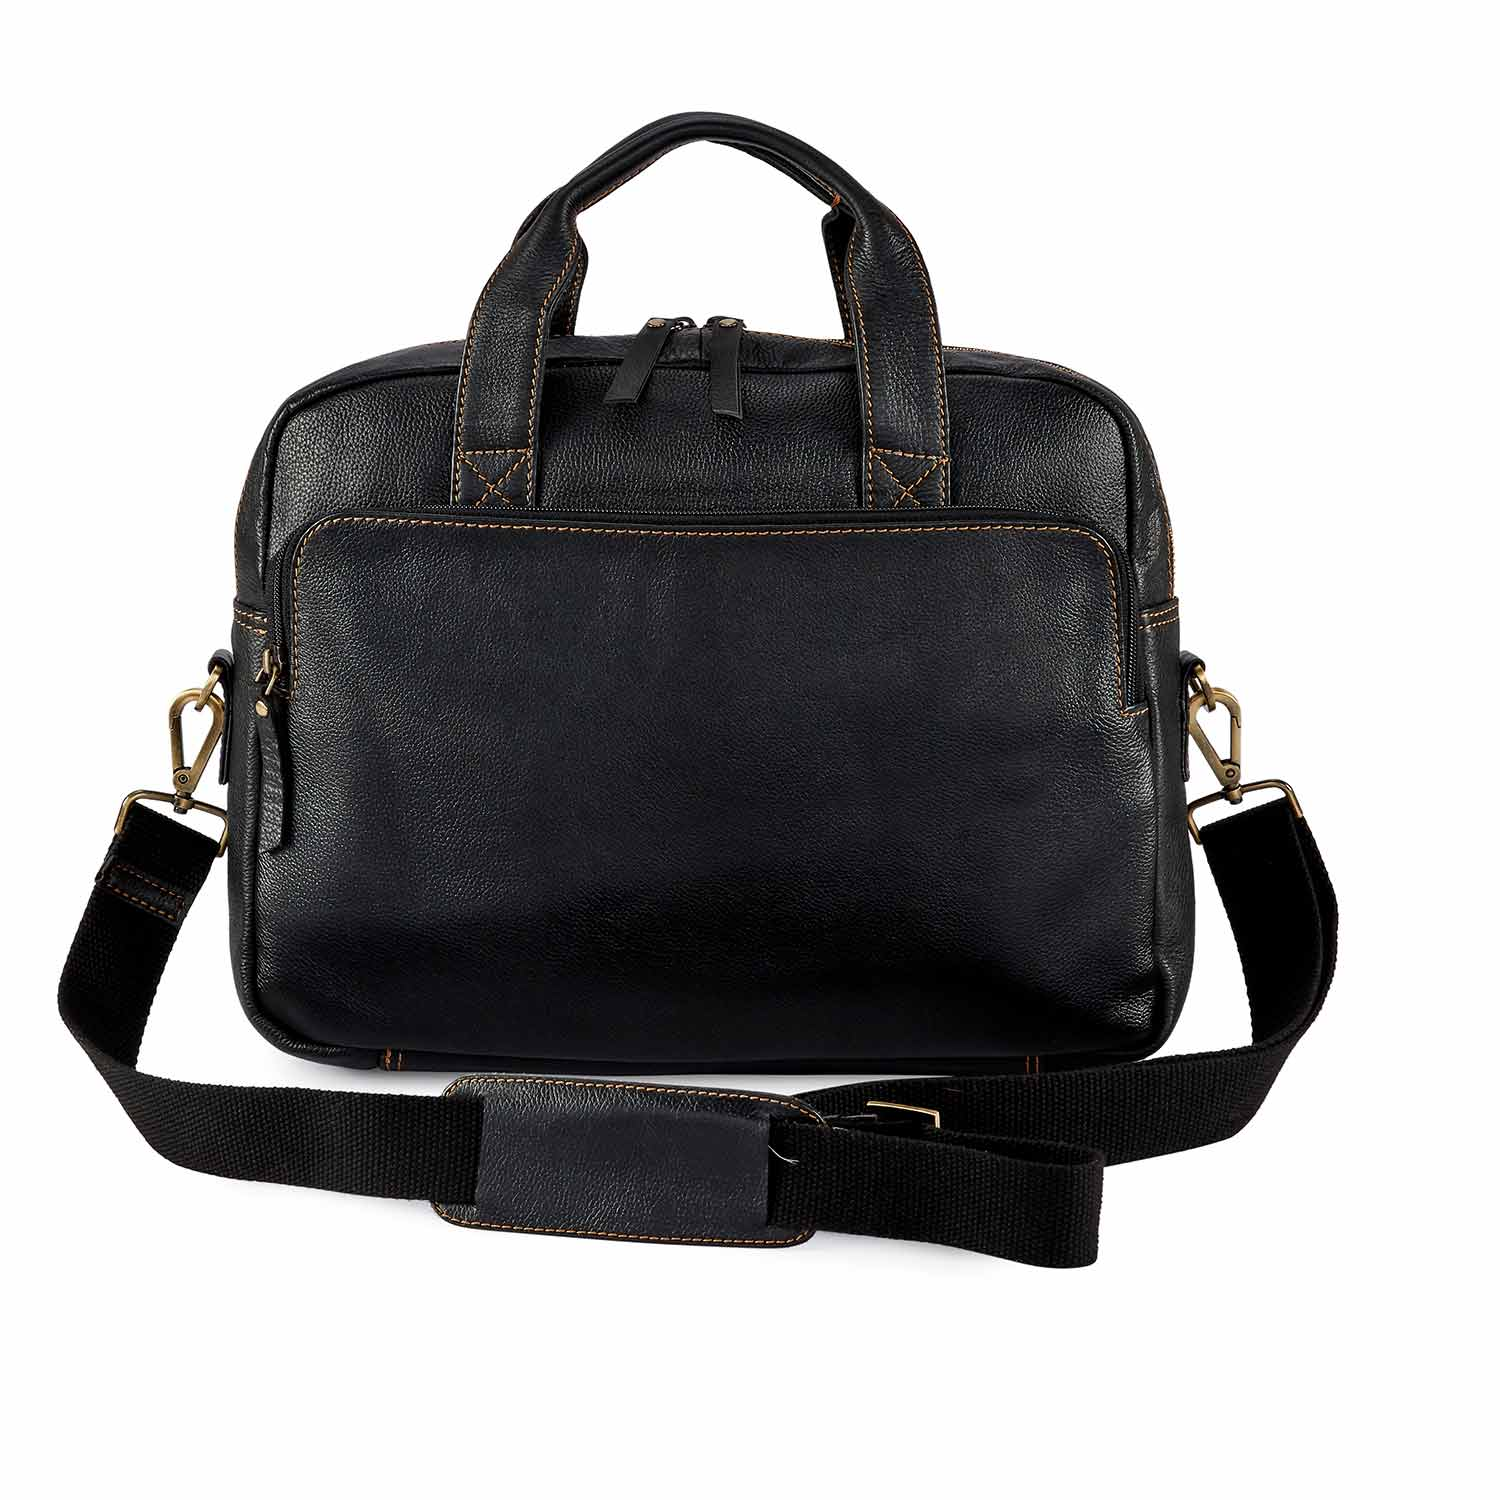 Black Pebbled Leather Compact Laptop Bag